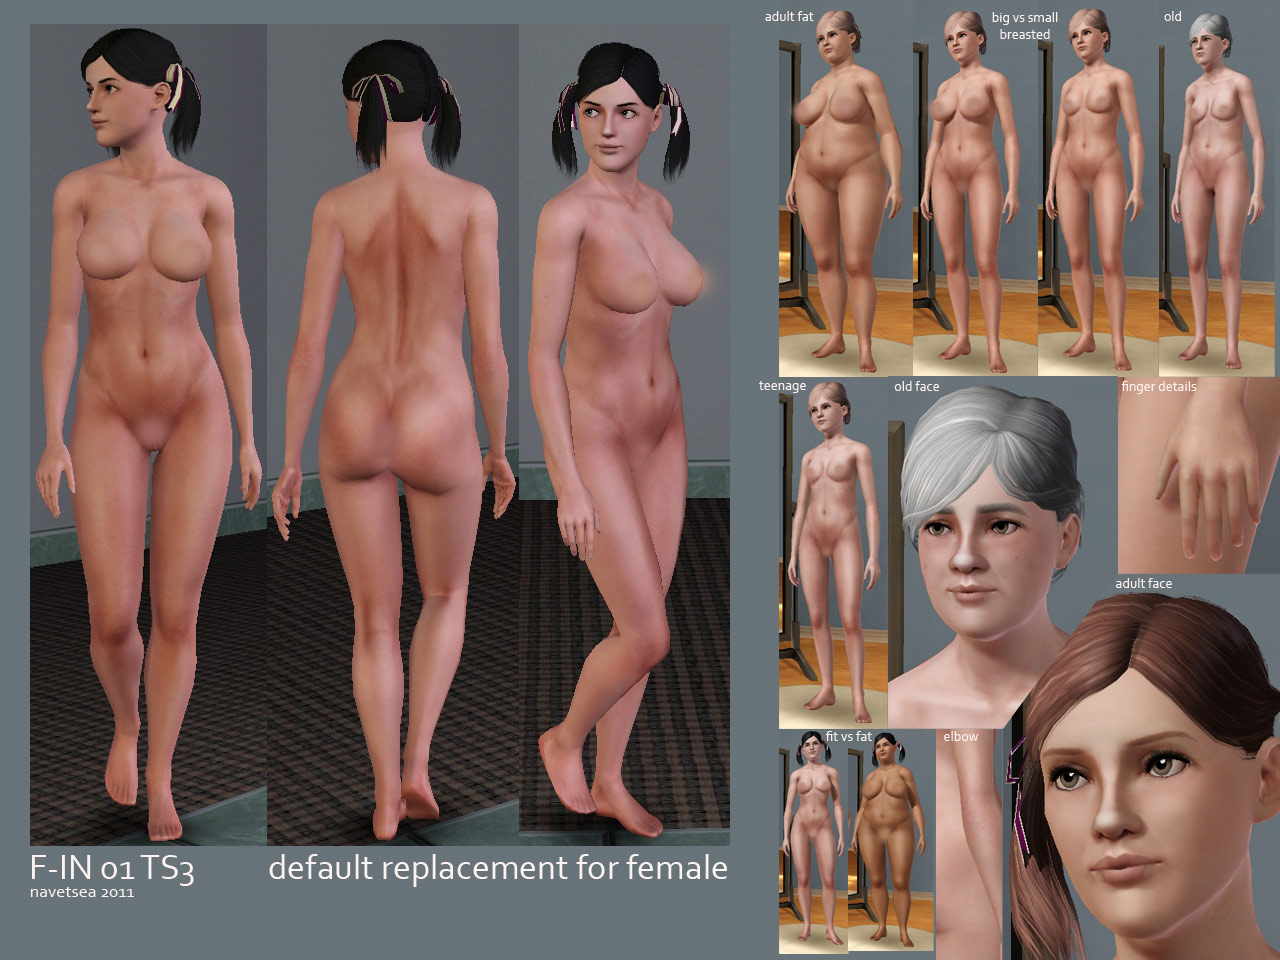 The sims 3 sex porn picture